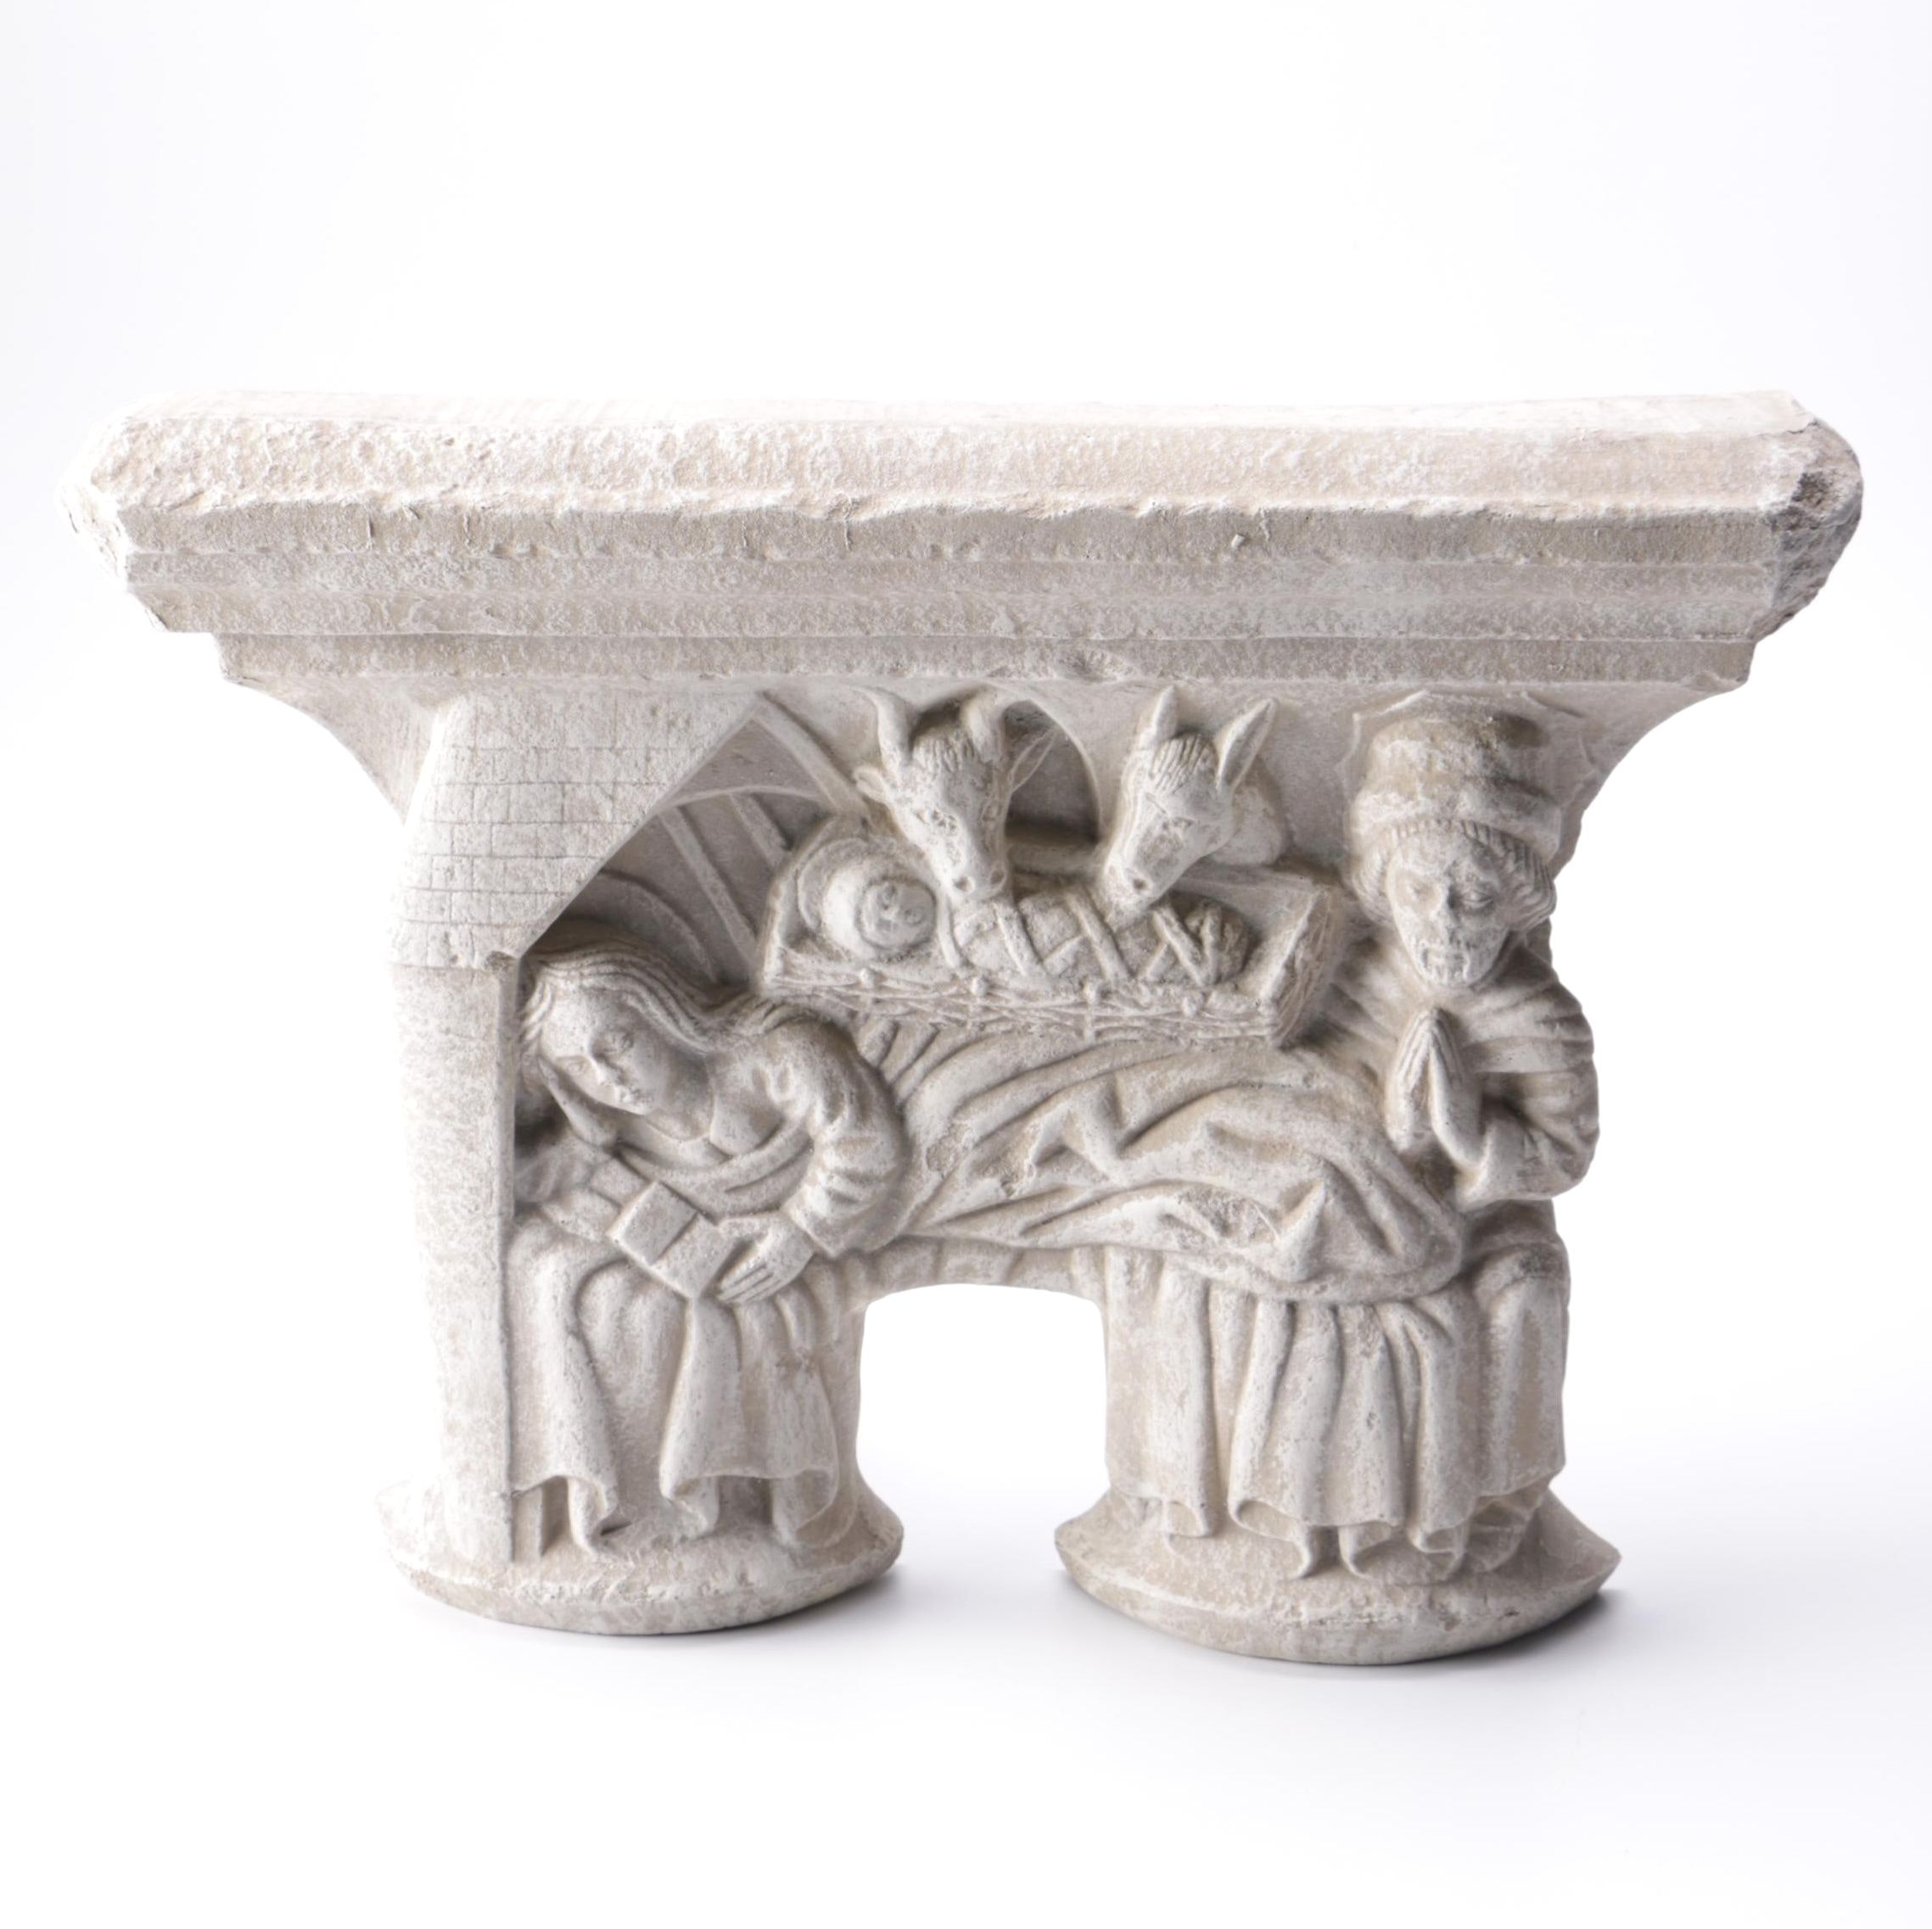 Plaster Reproduction of a Medieval Nativity Sculpture